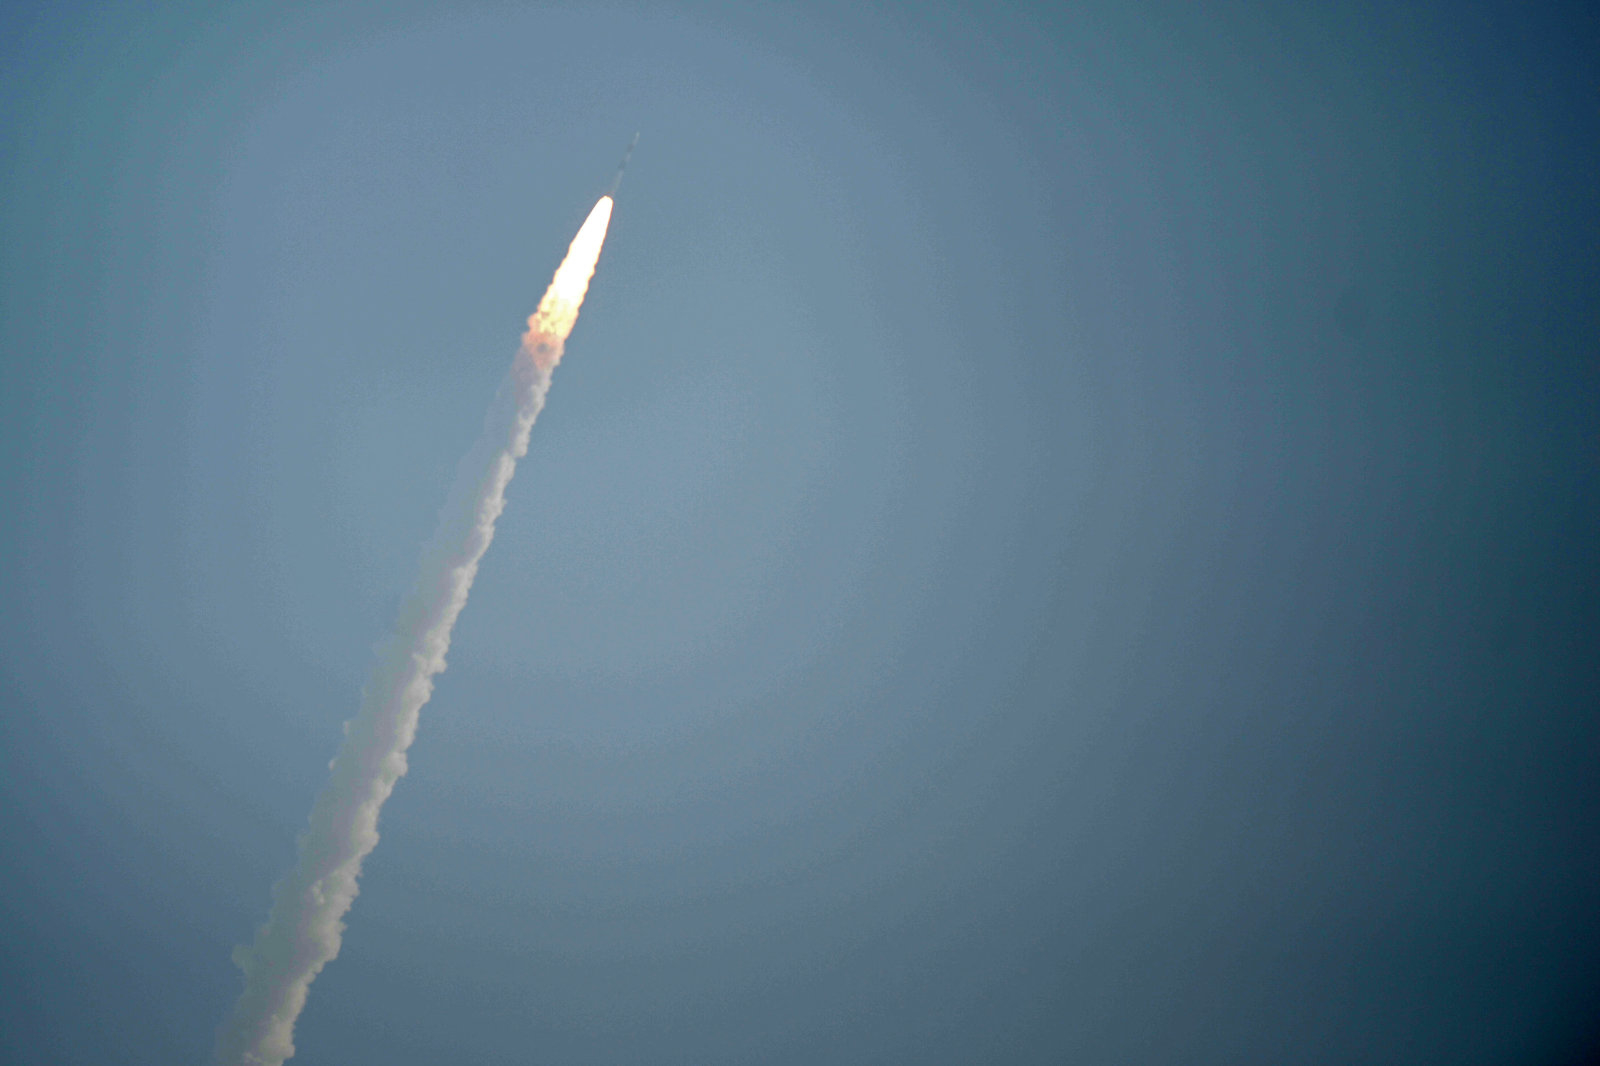 The Indian Space Research Organisation's (ISRO) earth observation satellite CARTOSAT -2, onboard the Polar Satellite Launch Vehicle (PSLV-C40) along with 28 satellites from six foreign countries including the US, France, Finland, South and Canada, launches at Satish dawan space center in Sriharikota in the state of Andhra Pradesh on January 12, 2018.India's Indian Space Research Organisation's (ISRO) launches its 100th satellite. / AFP PHOTO / ARUN SANKAR        (Photo credit should read ARUN SANKAR/AFP/Getty Images)